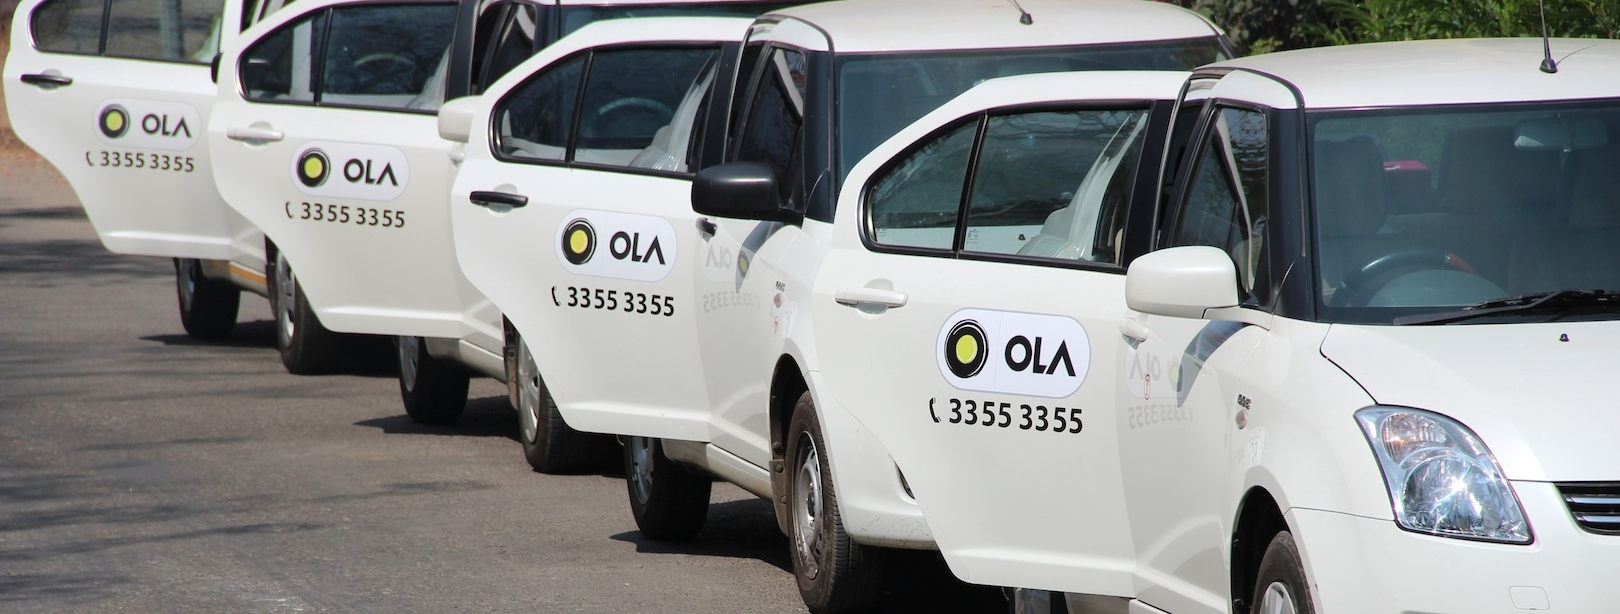 Ola Cabs: Save million dollars per year now!